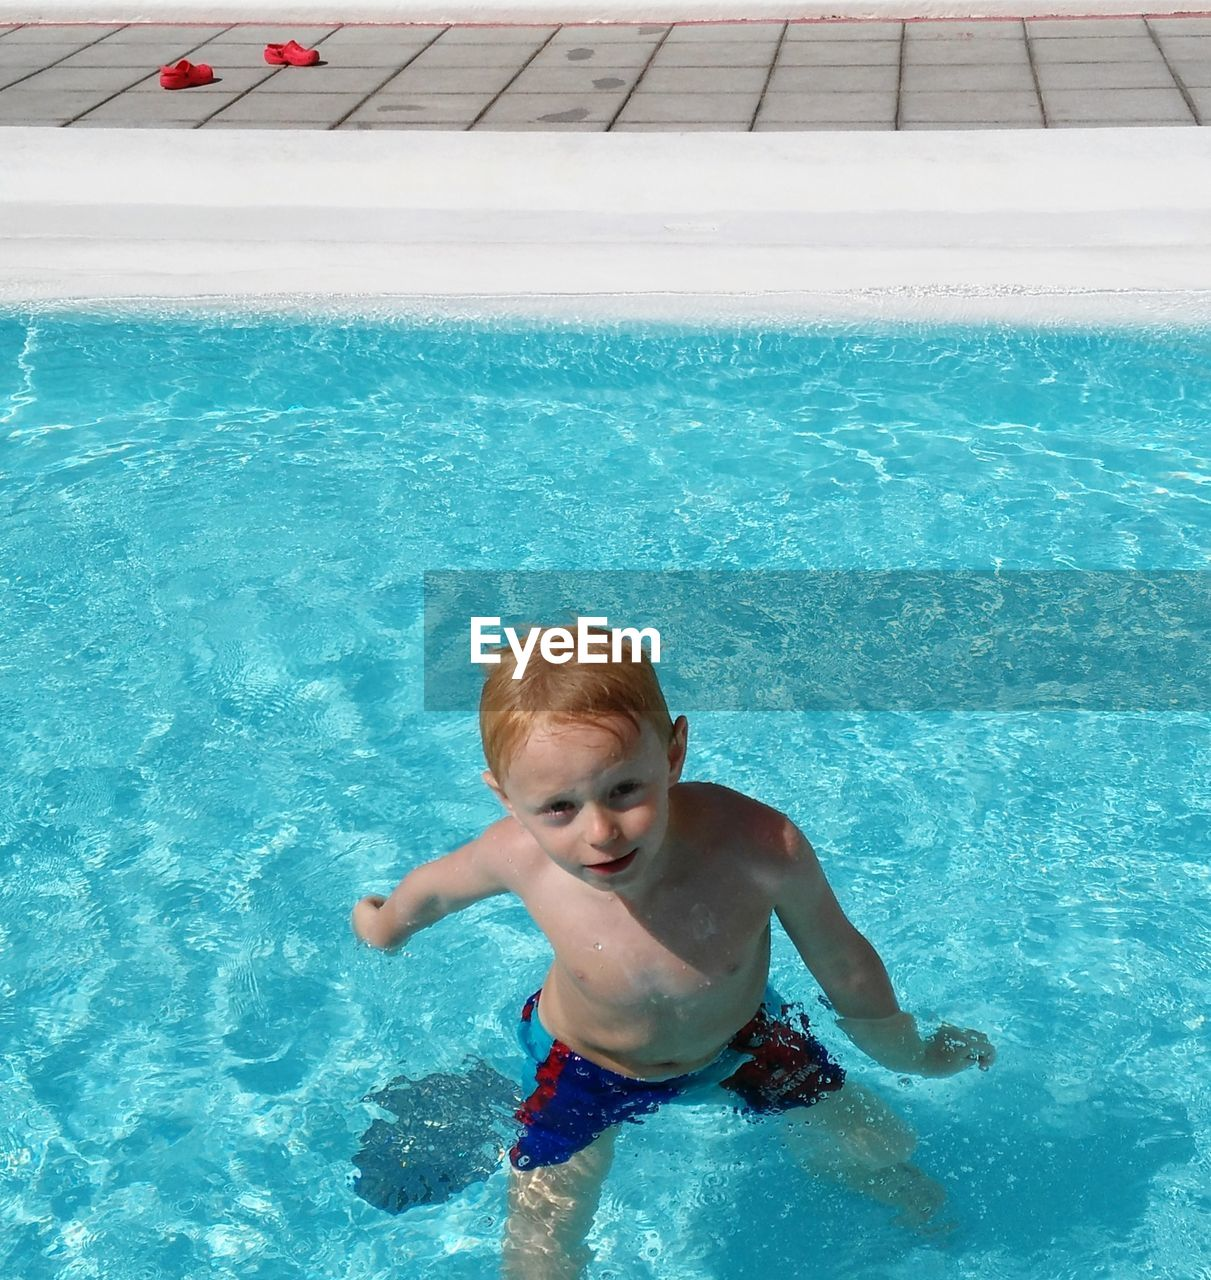 High Angle Portrait Of Boy Standing In Swimming Pool During Sunny Day